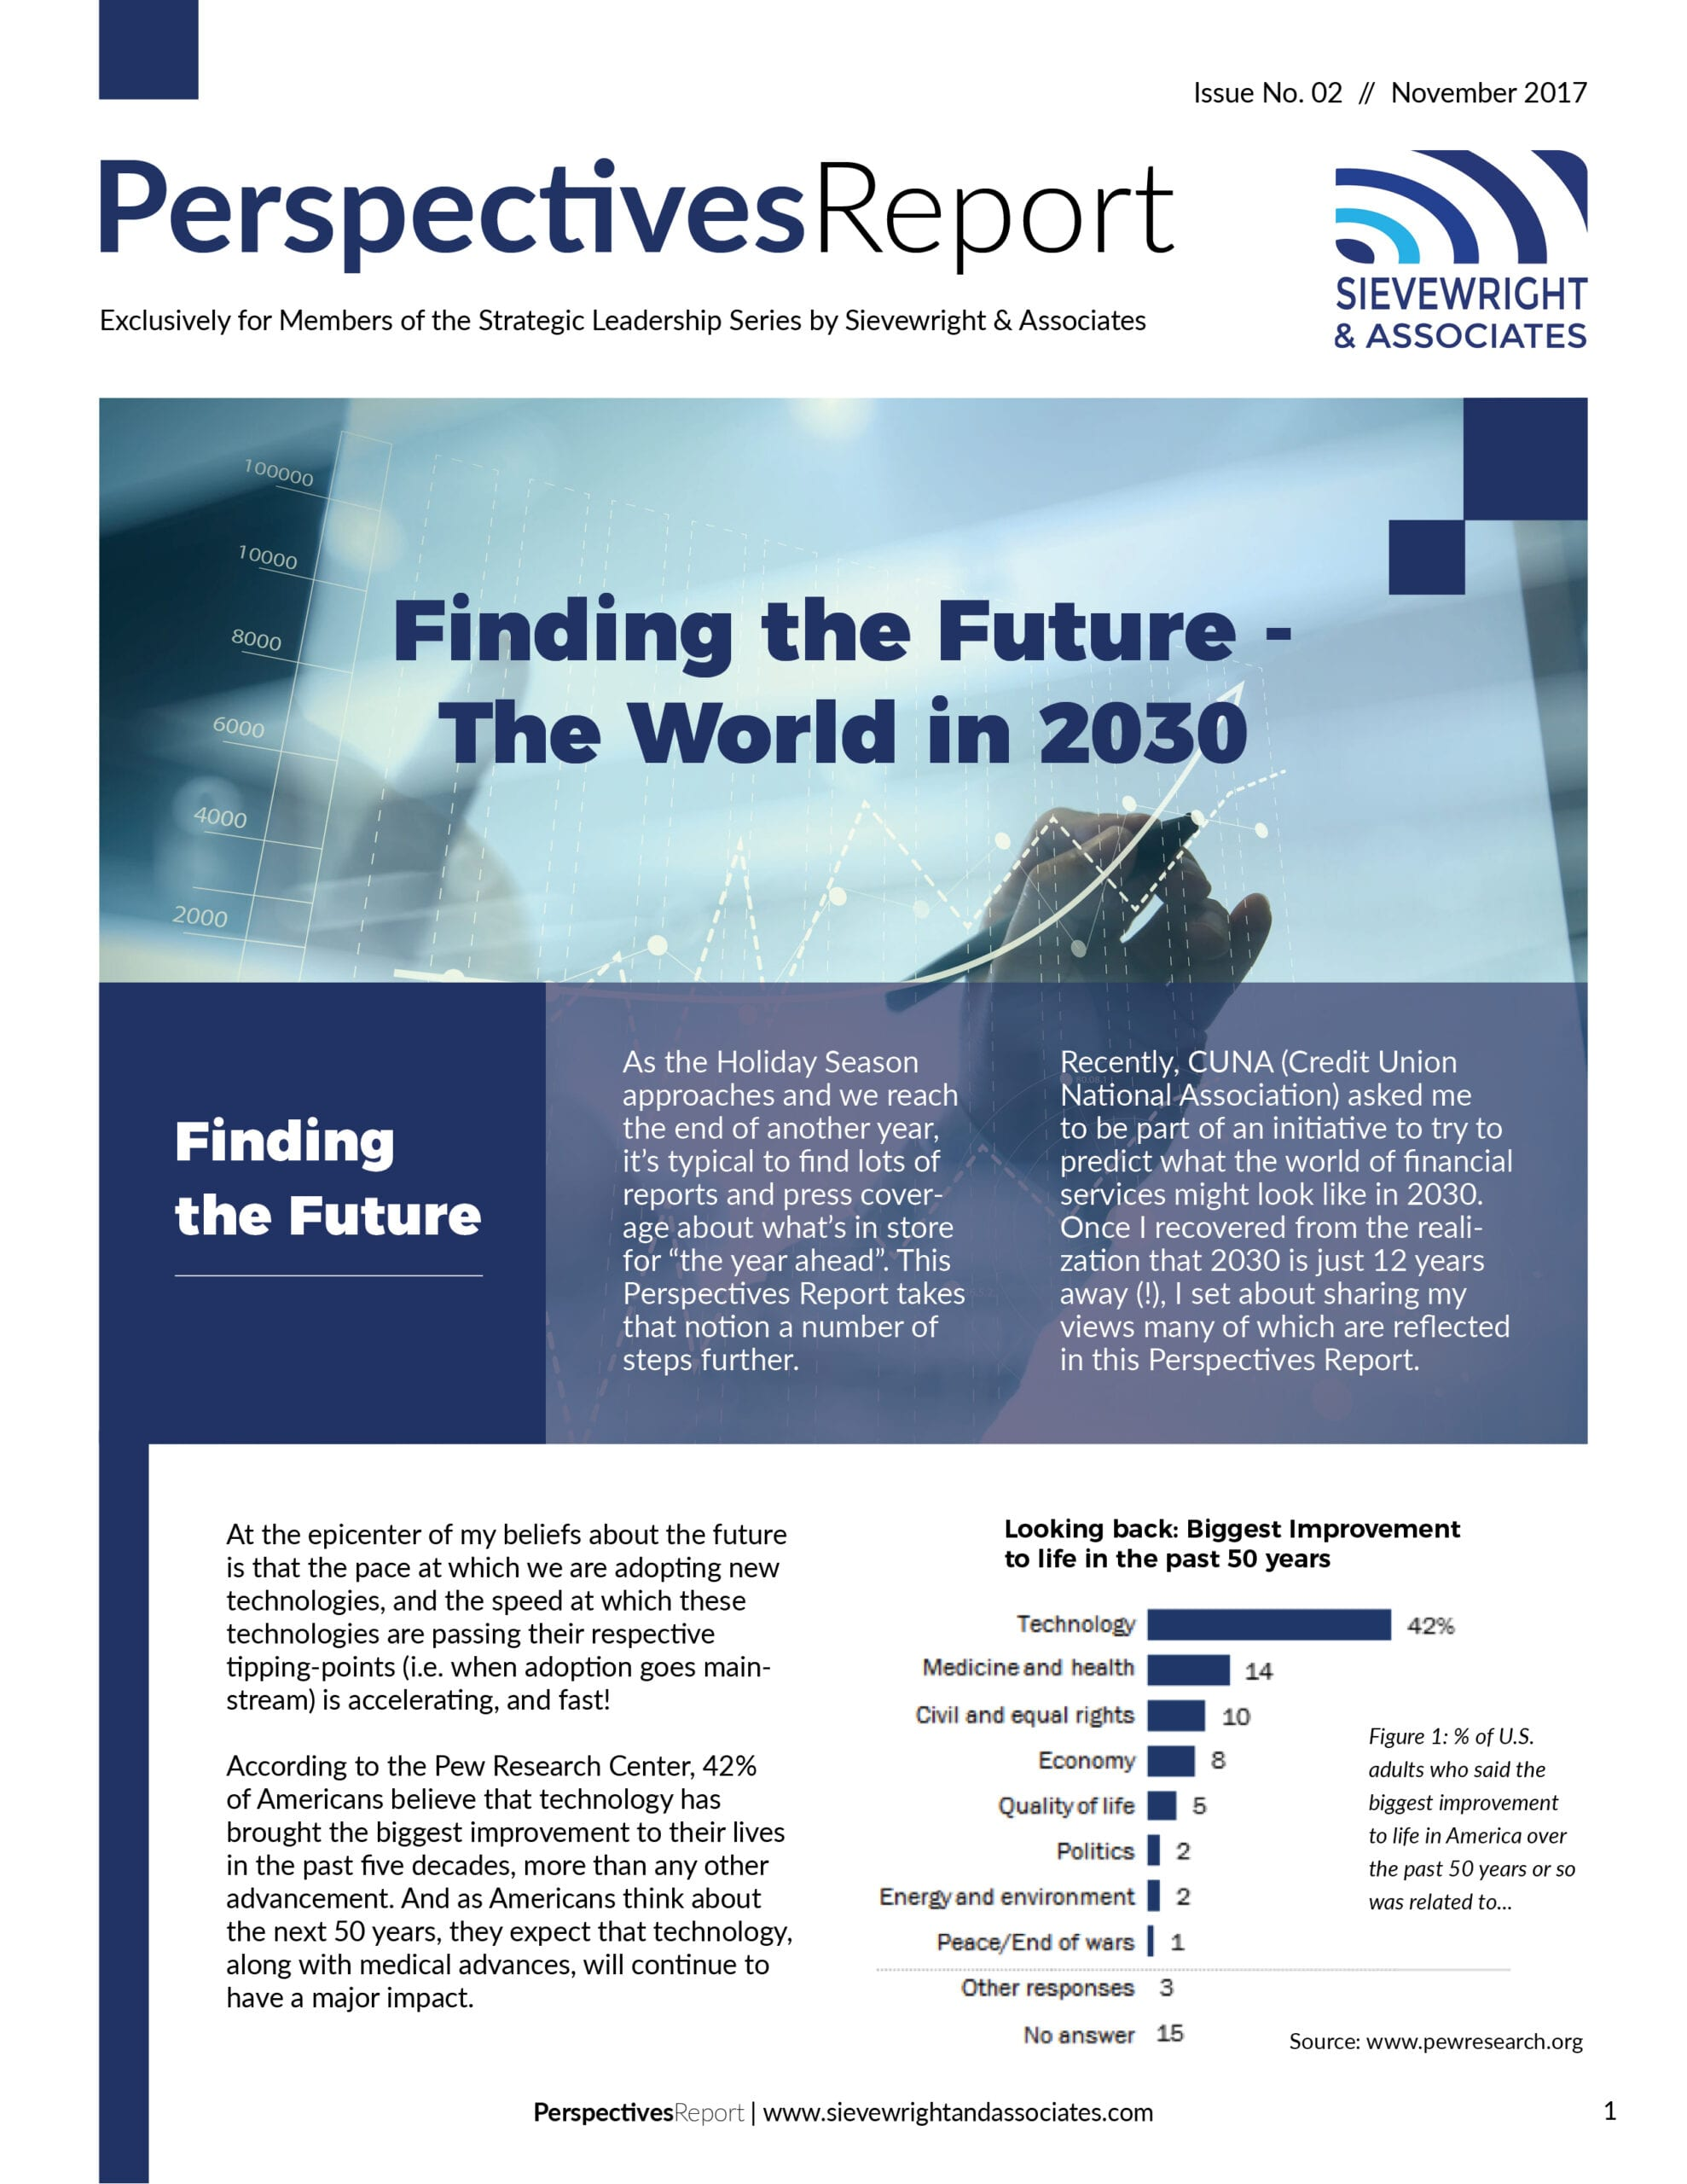 Perspectives Report Cover Image November 2017